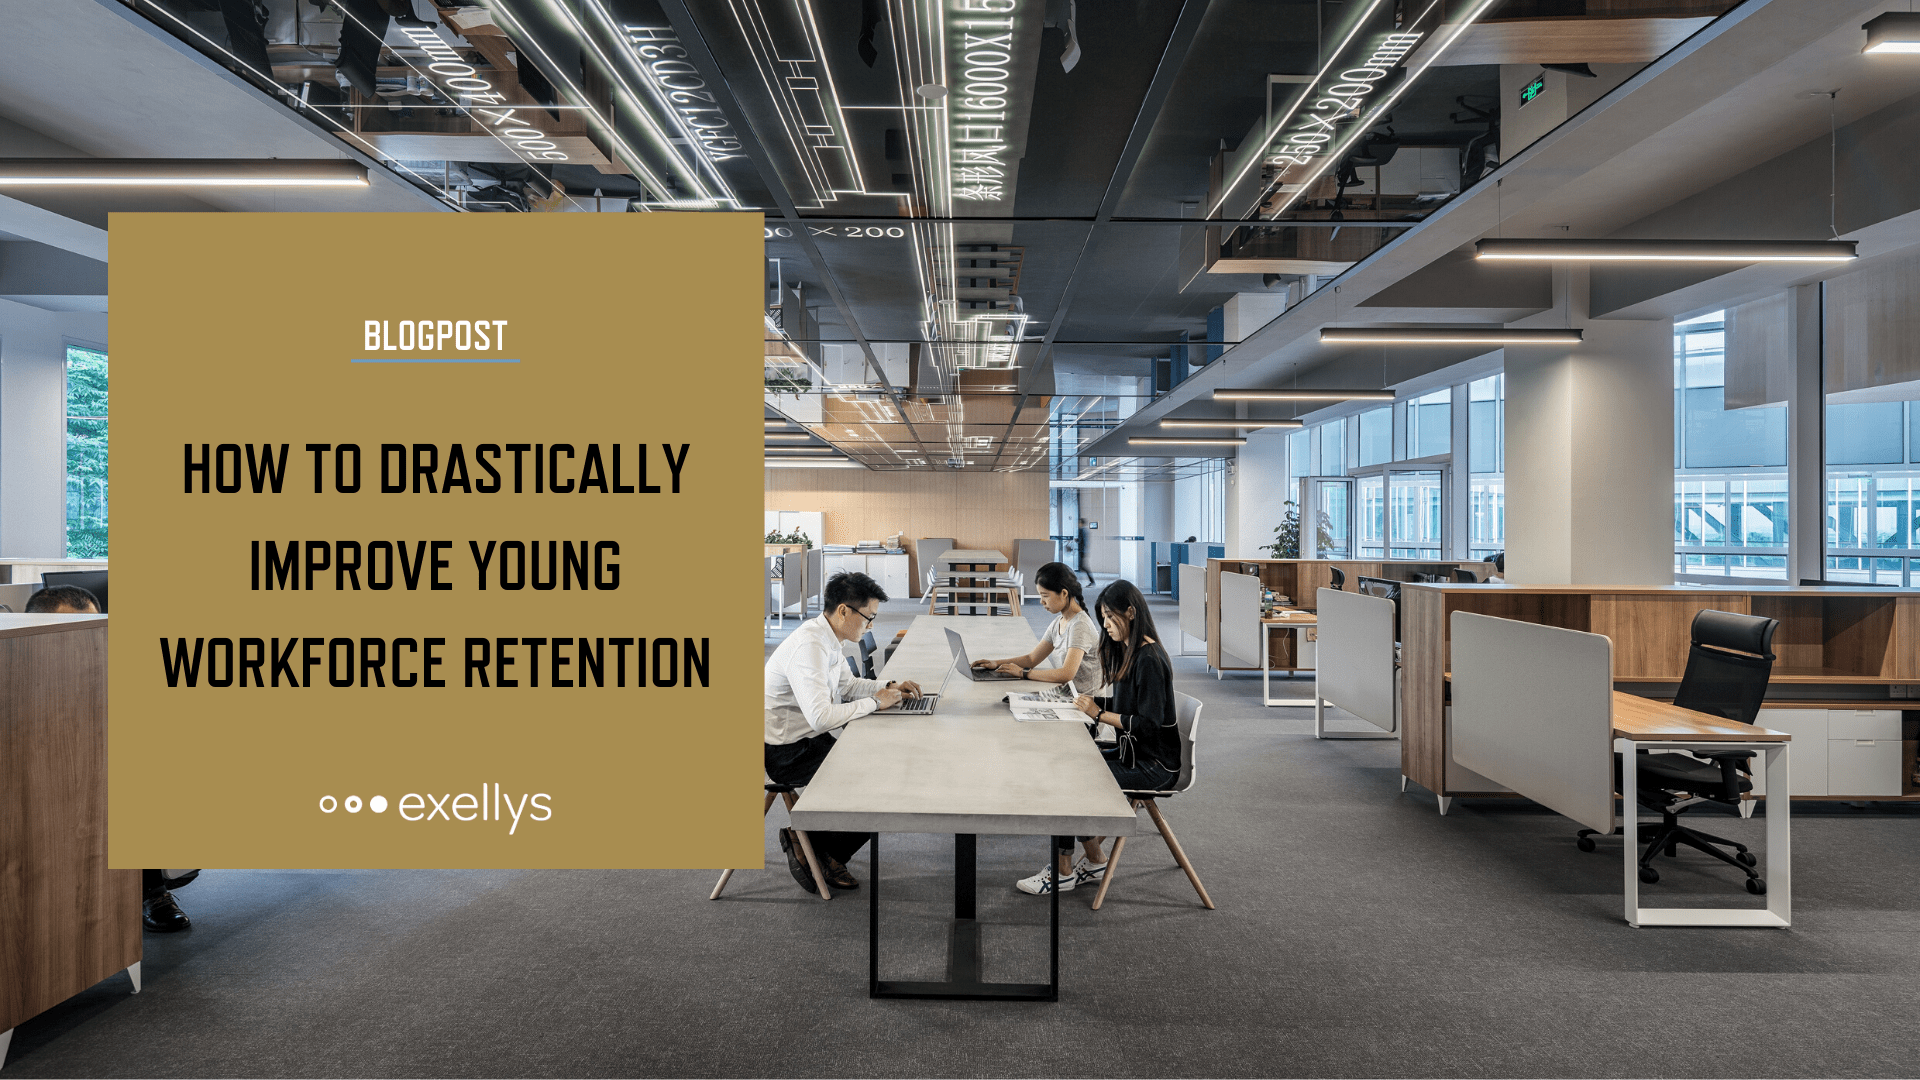 How to drastically improve young workforce retention - LinkedIn share image